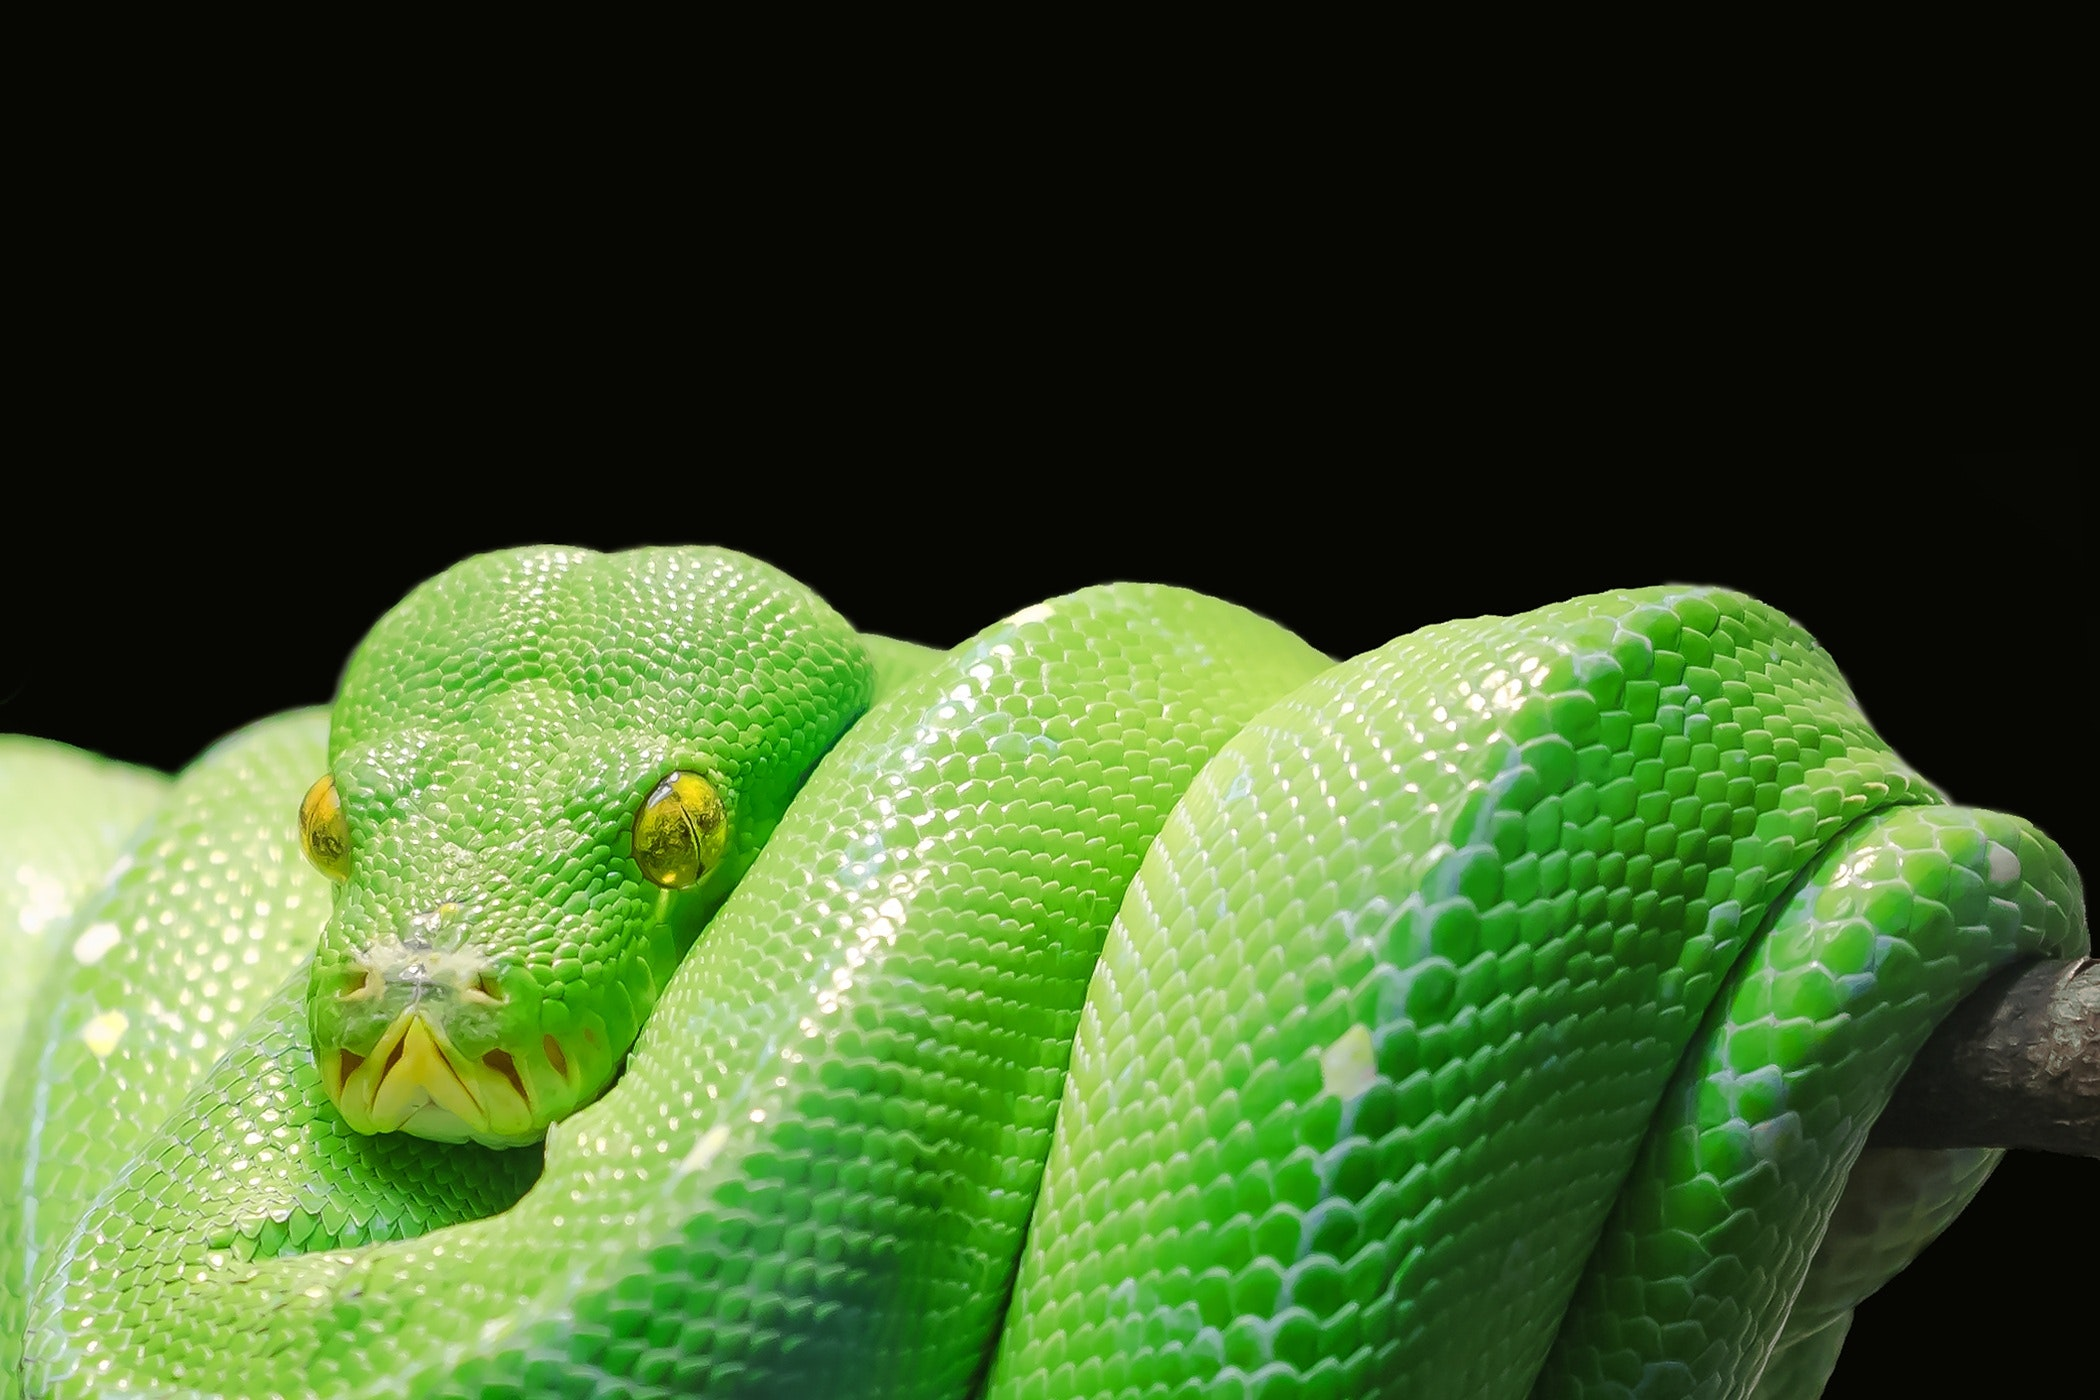 Green Snake, Animal, Close-up, Green, Python, HQ Photo